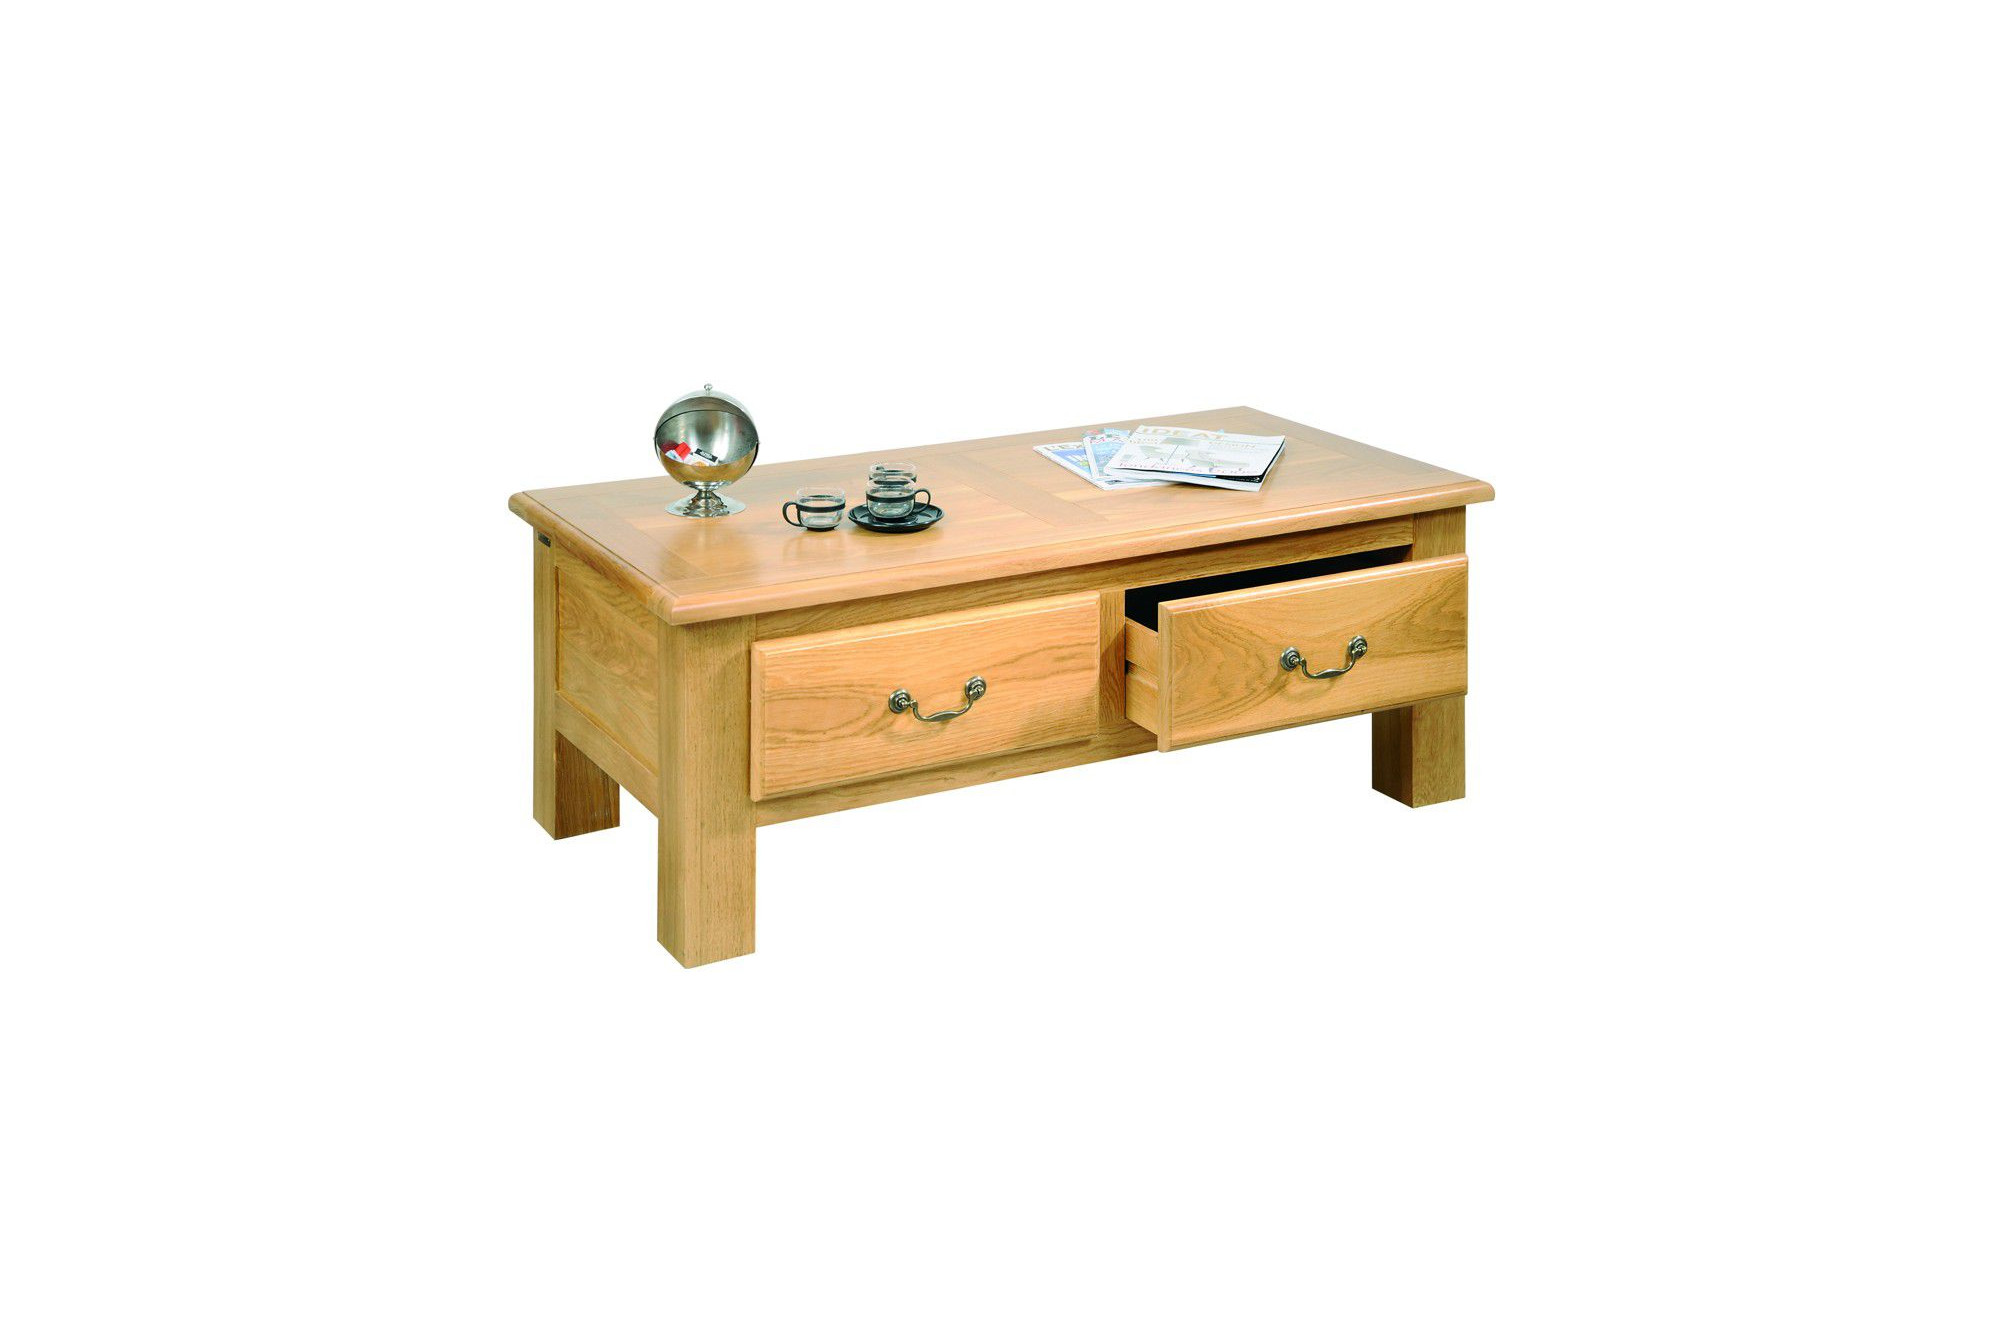 Table Basse Chene Clair Massif Table Basse Chene Massif Meuble D Occasion Hellin